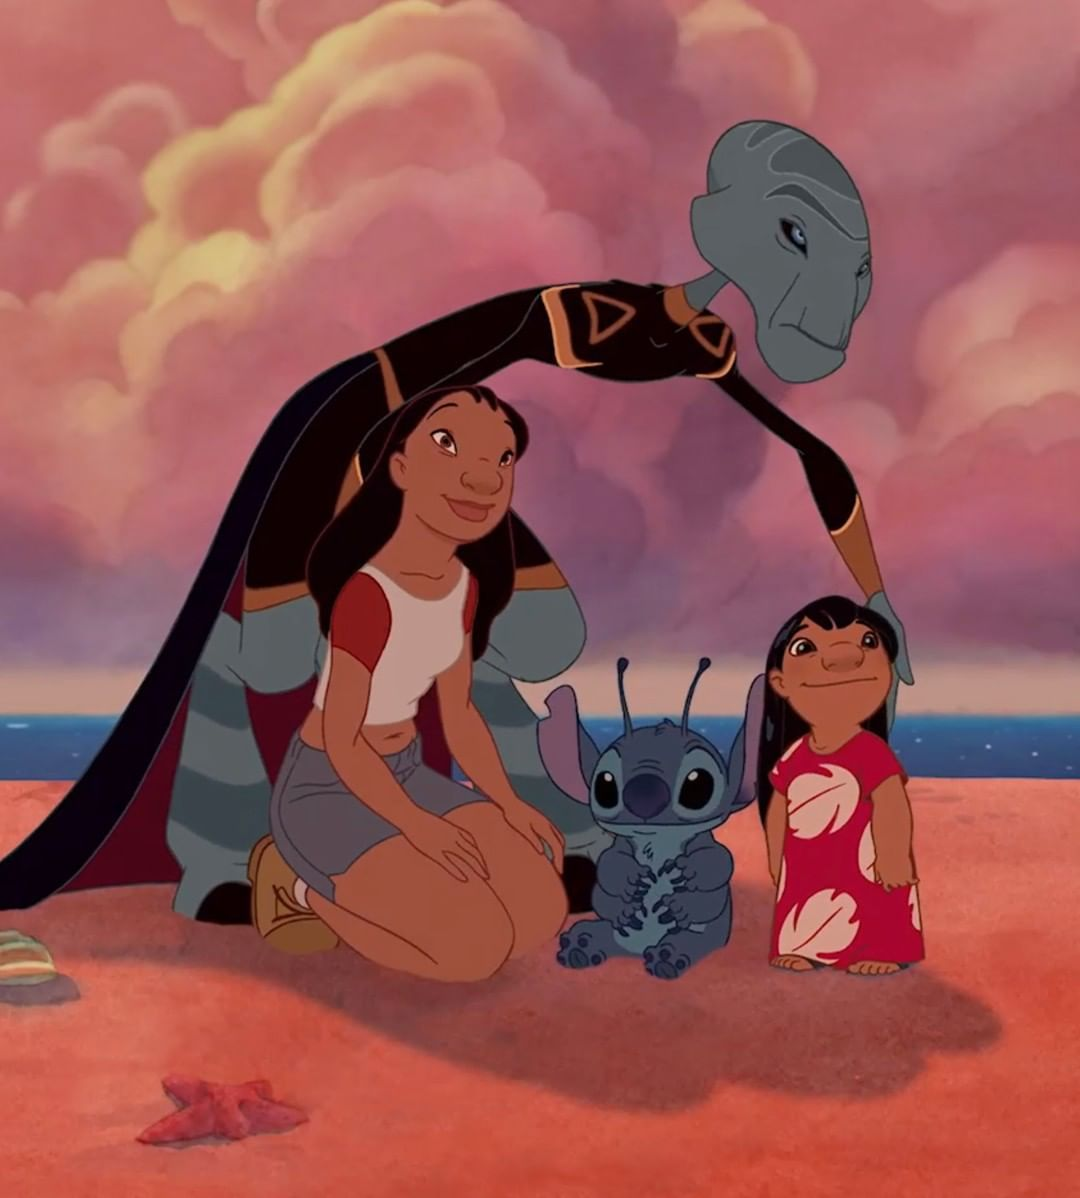 Nobody gets left behind. ❤️ Tag your 'ohana. #liloandstitch